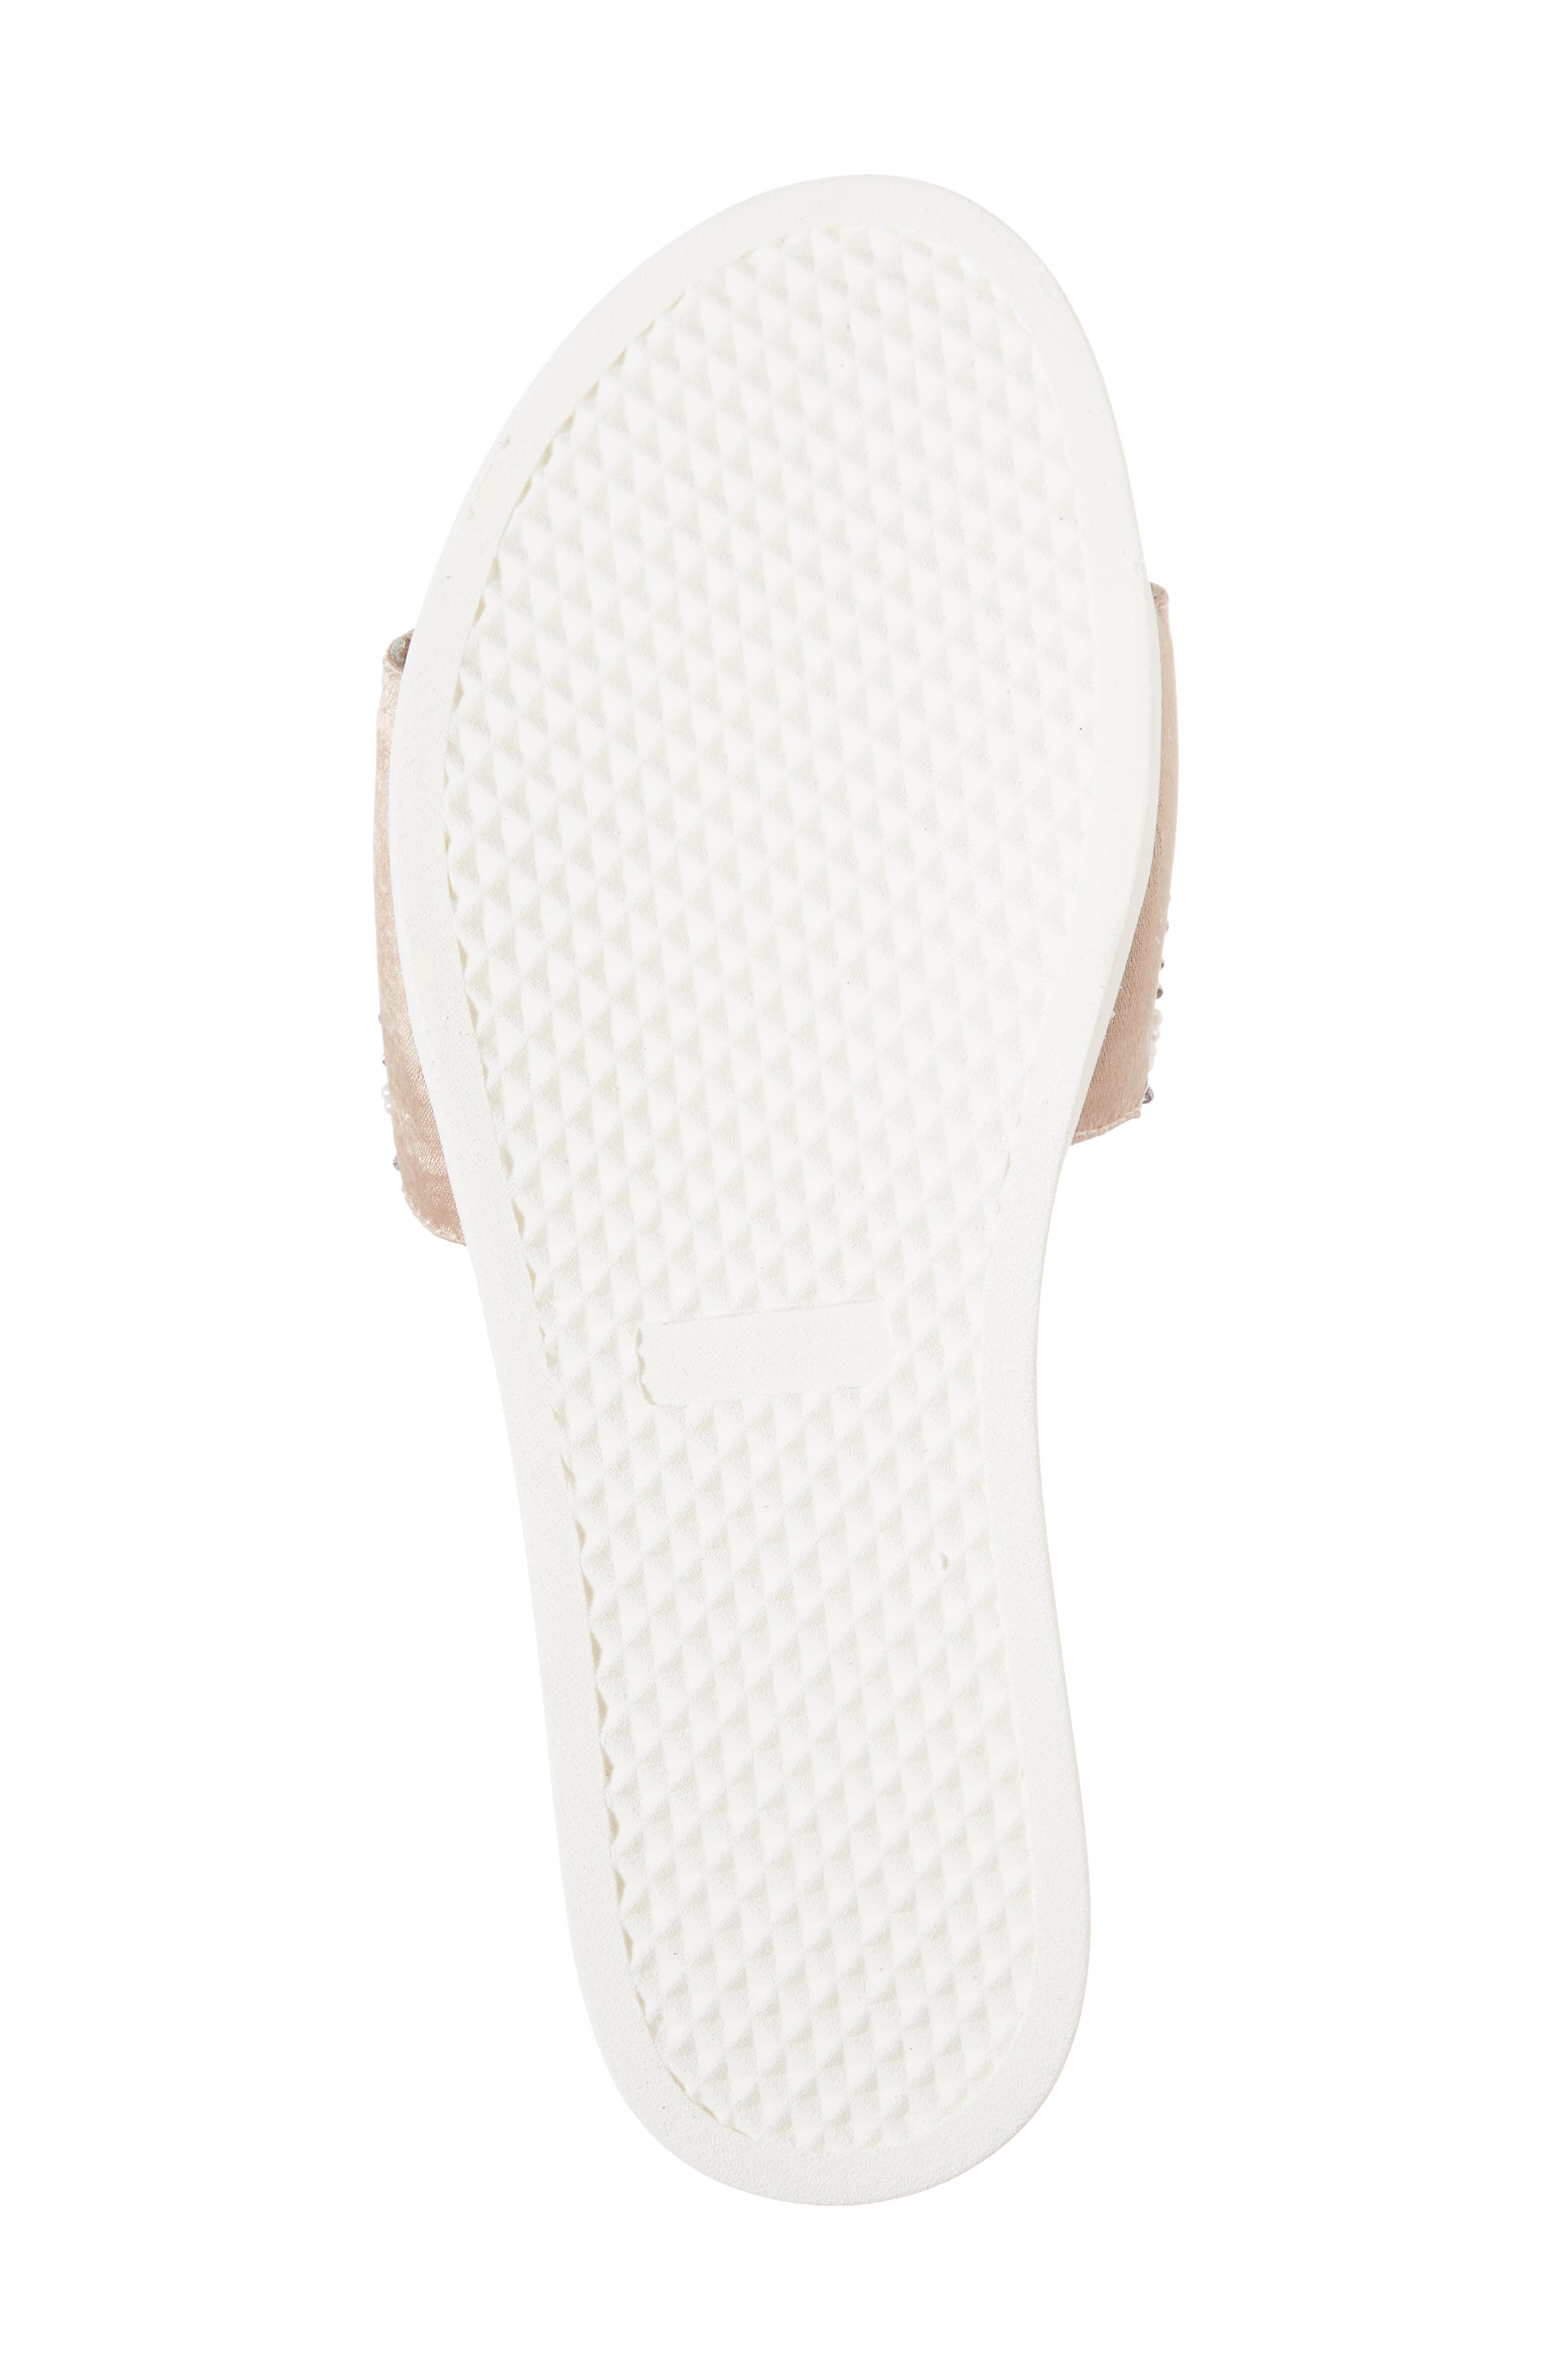 Thalia Beaded Slide Sandal,                             Alternate thumbnail 6, color,                             400